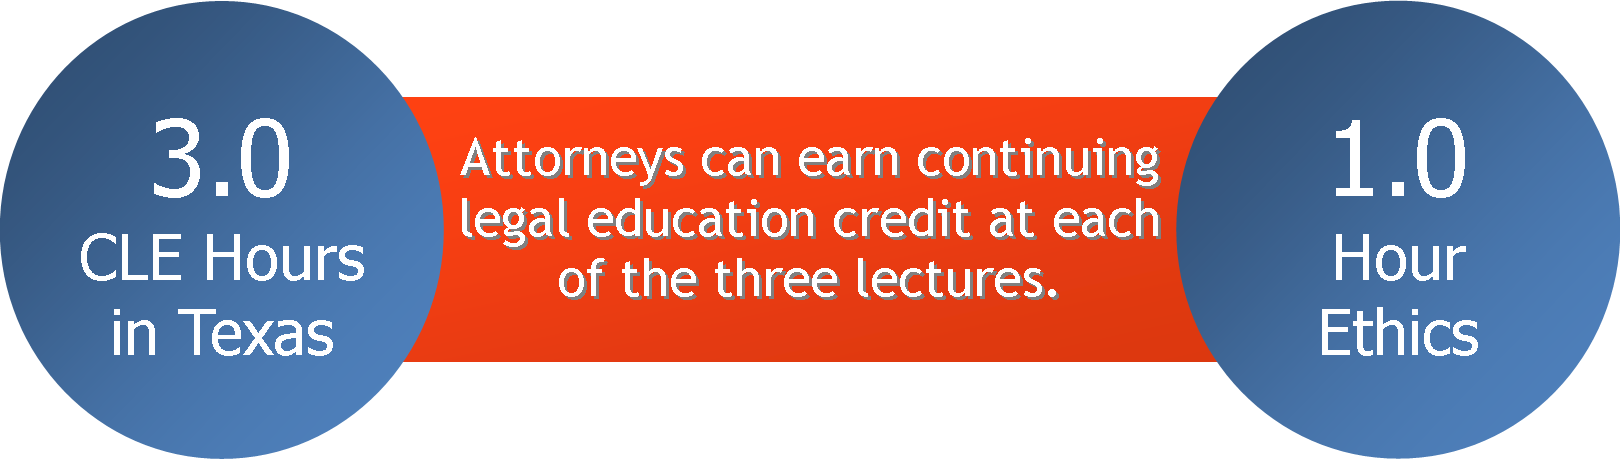 Attorneys can earn 3.0 CLE hours and 1.0 hour ethics in Texas when they attend all three lectures.